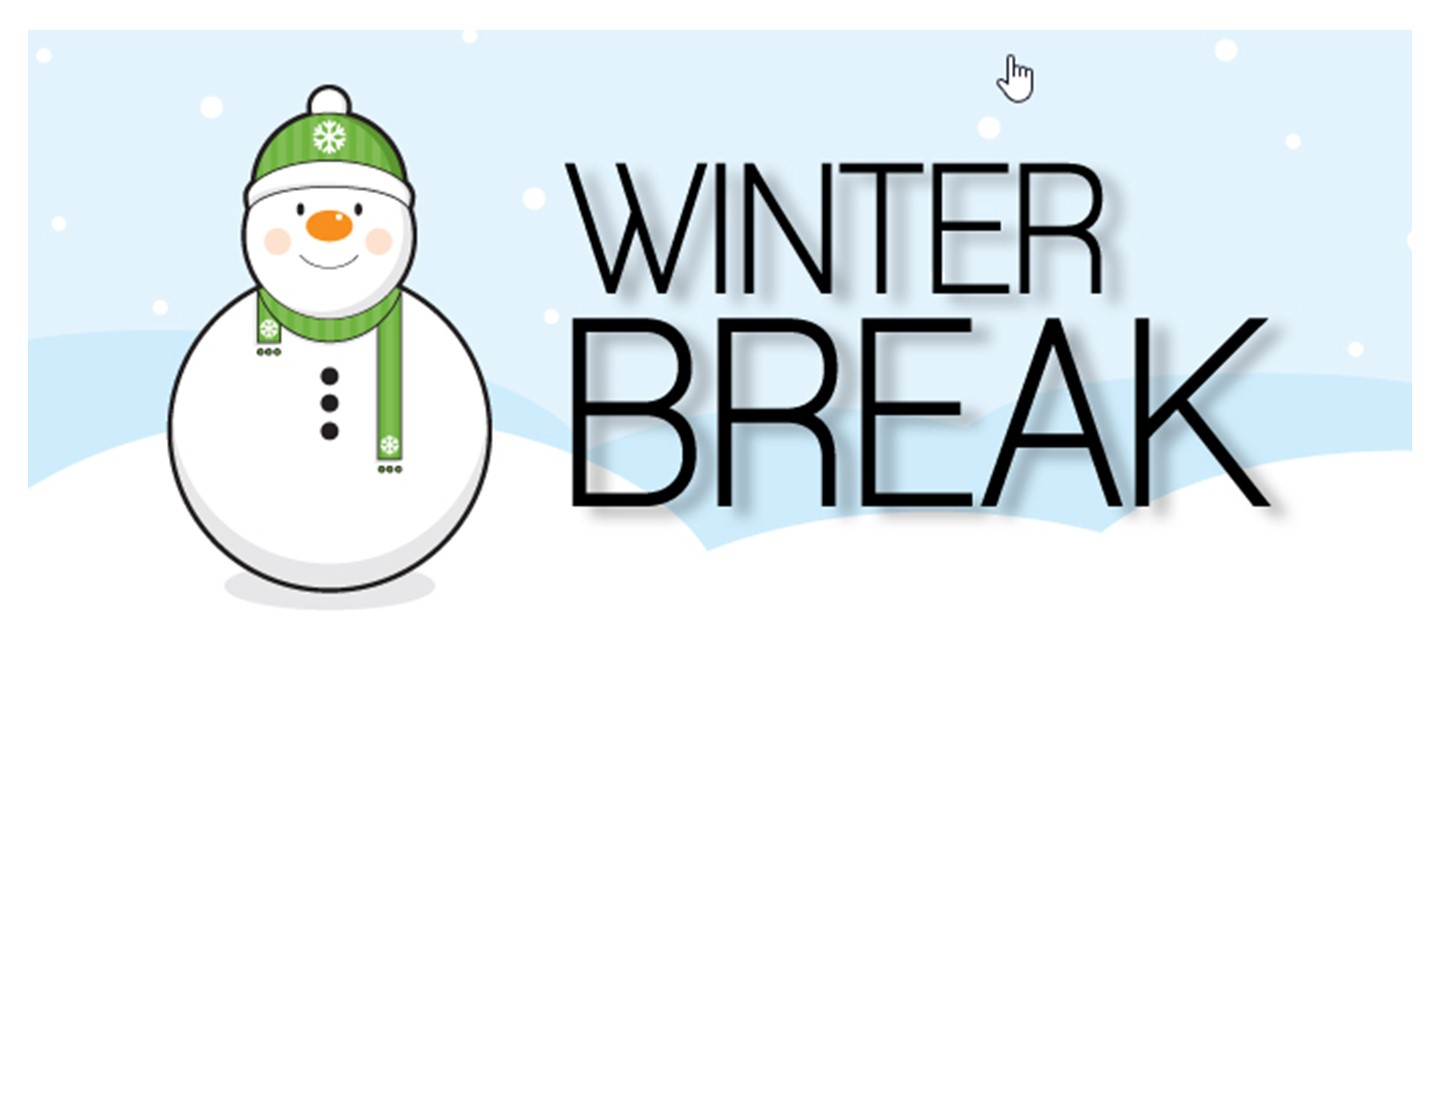 Winter Break - Snowman